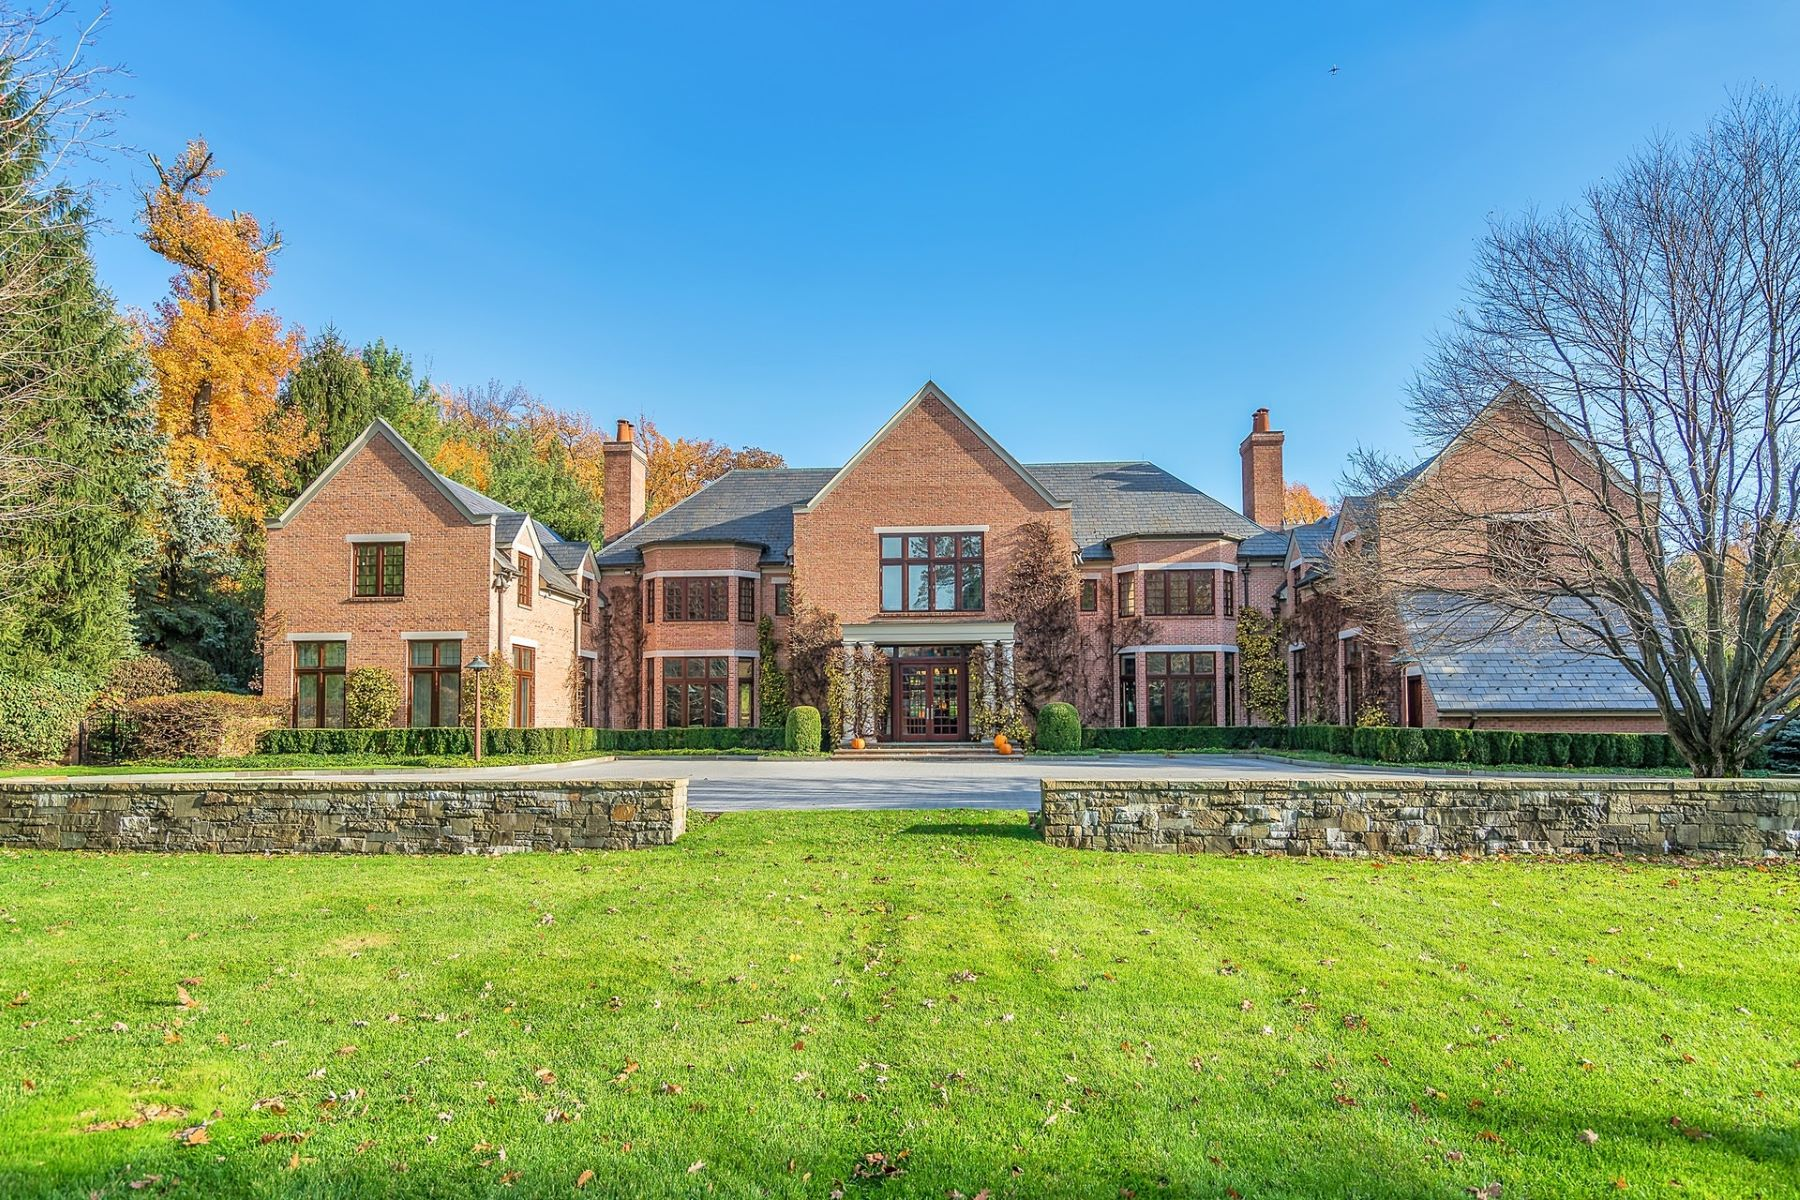 Moradia para Venda às Magnificent Estate 155 Lincoln Street, Englewood, Nova Jersey 07631 Estados Unidos